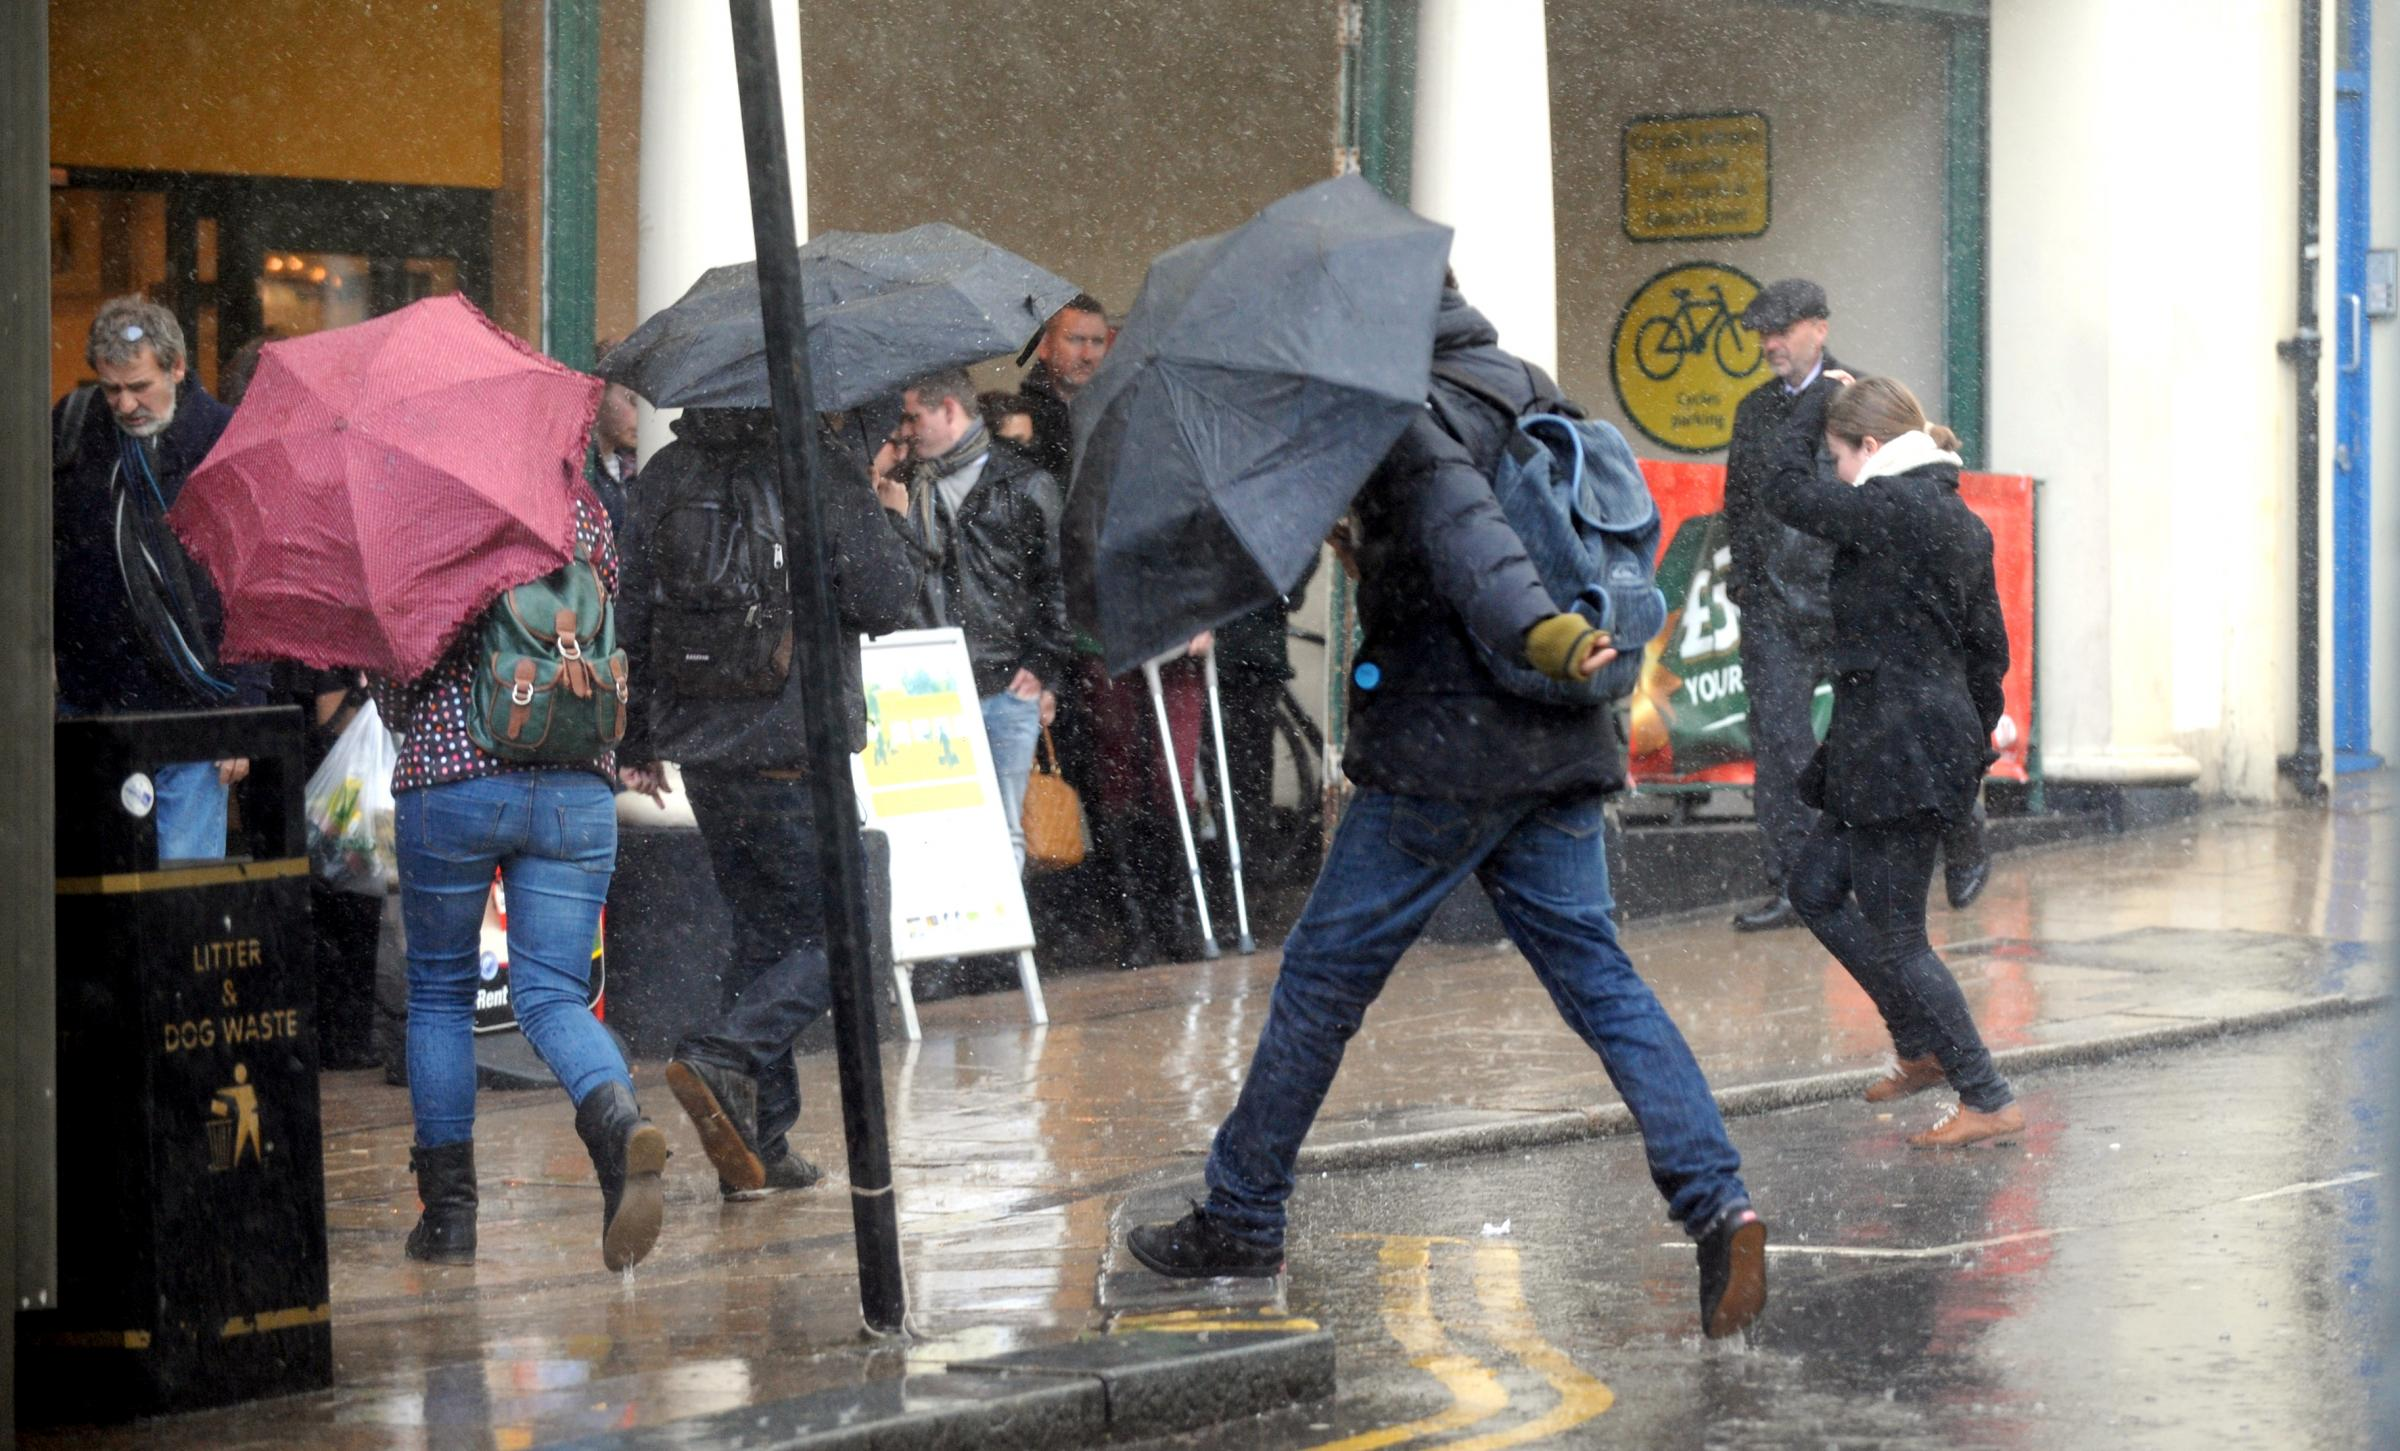 Weather warning as heavy rain showers continue in Sussex